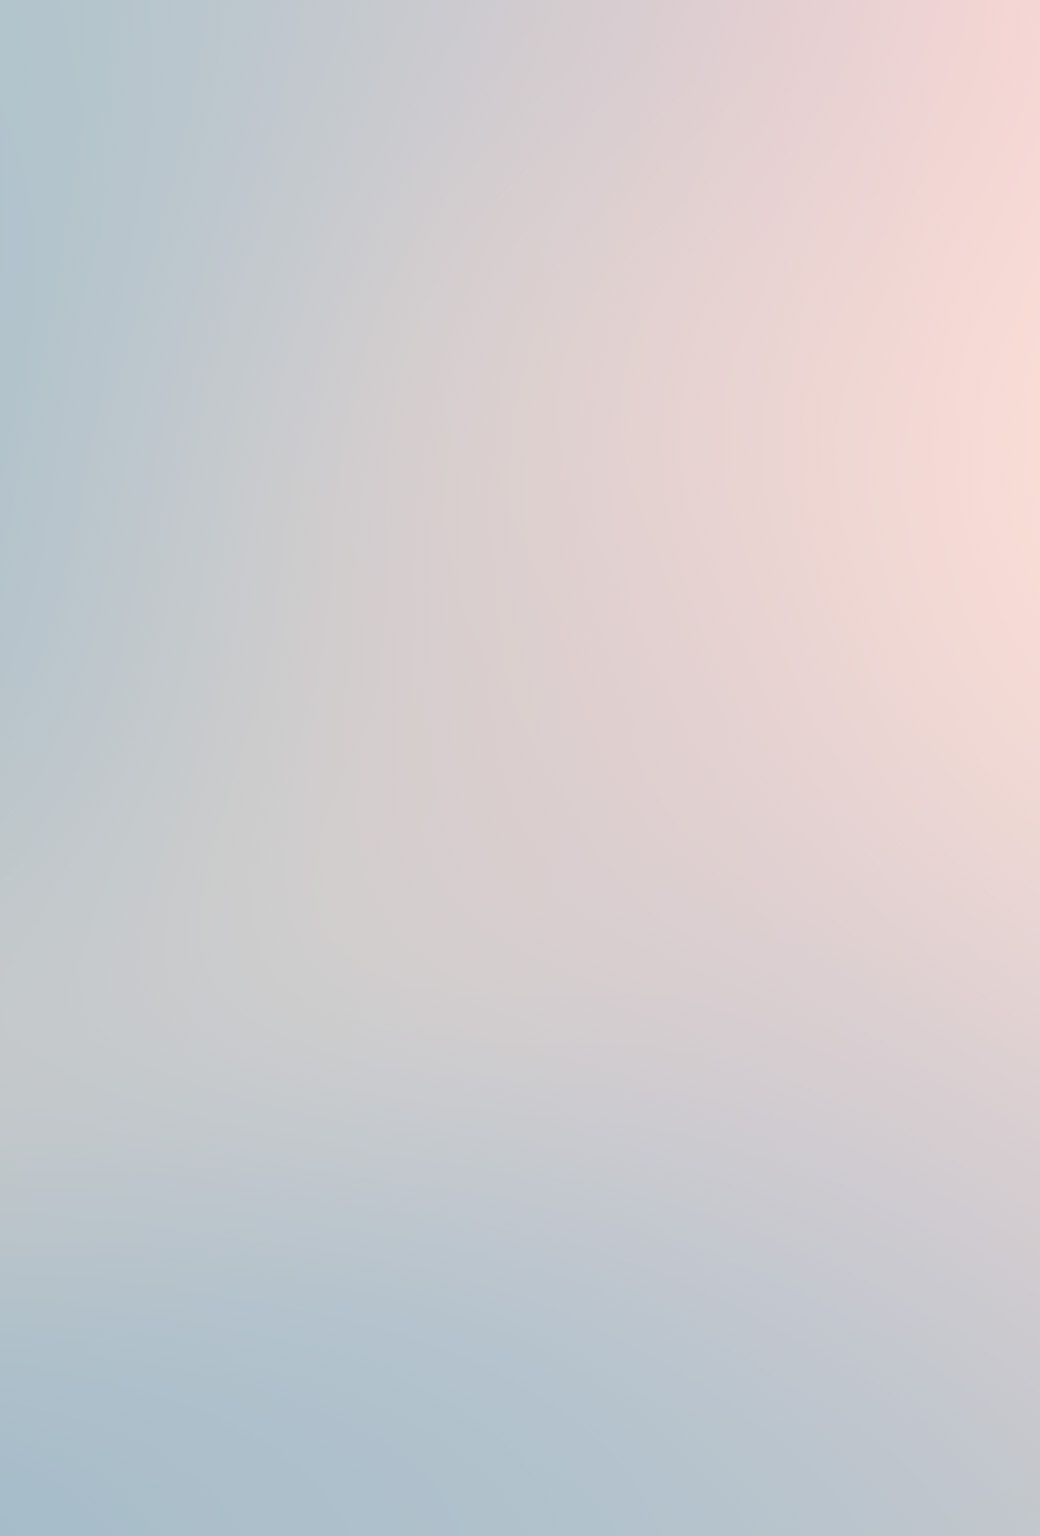 Plain White Wallpapers Hd Resolution Click Wallpapers Wall Paper Phone Blurred Background Colorful Gifs